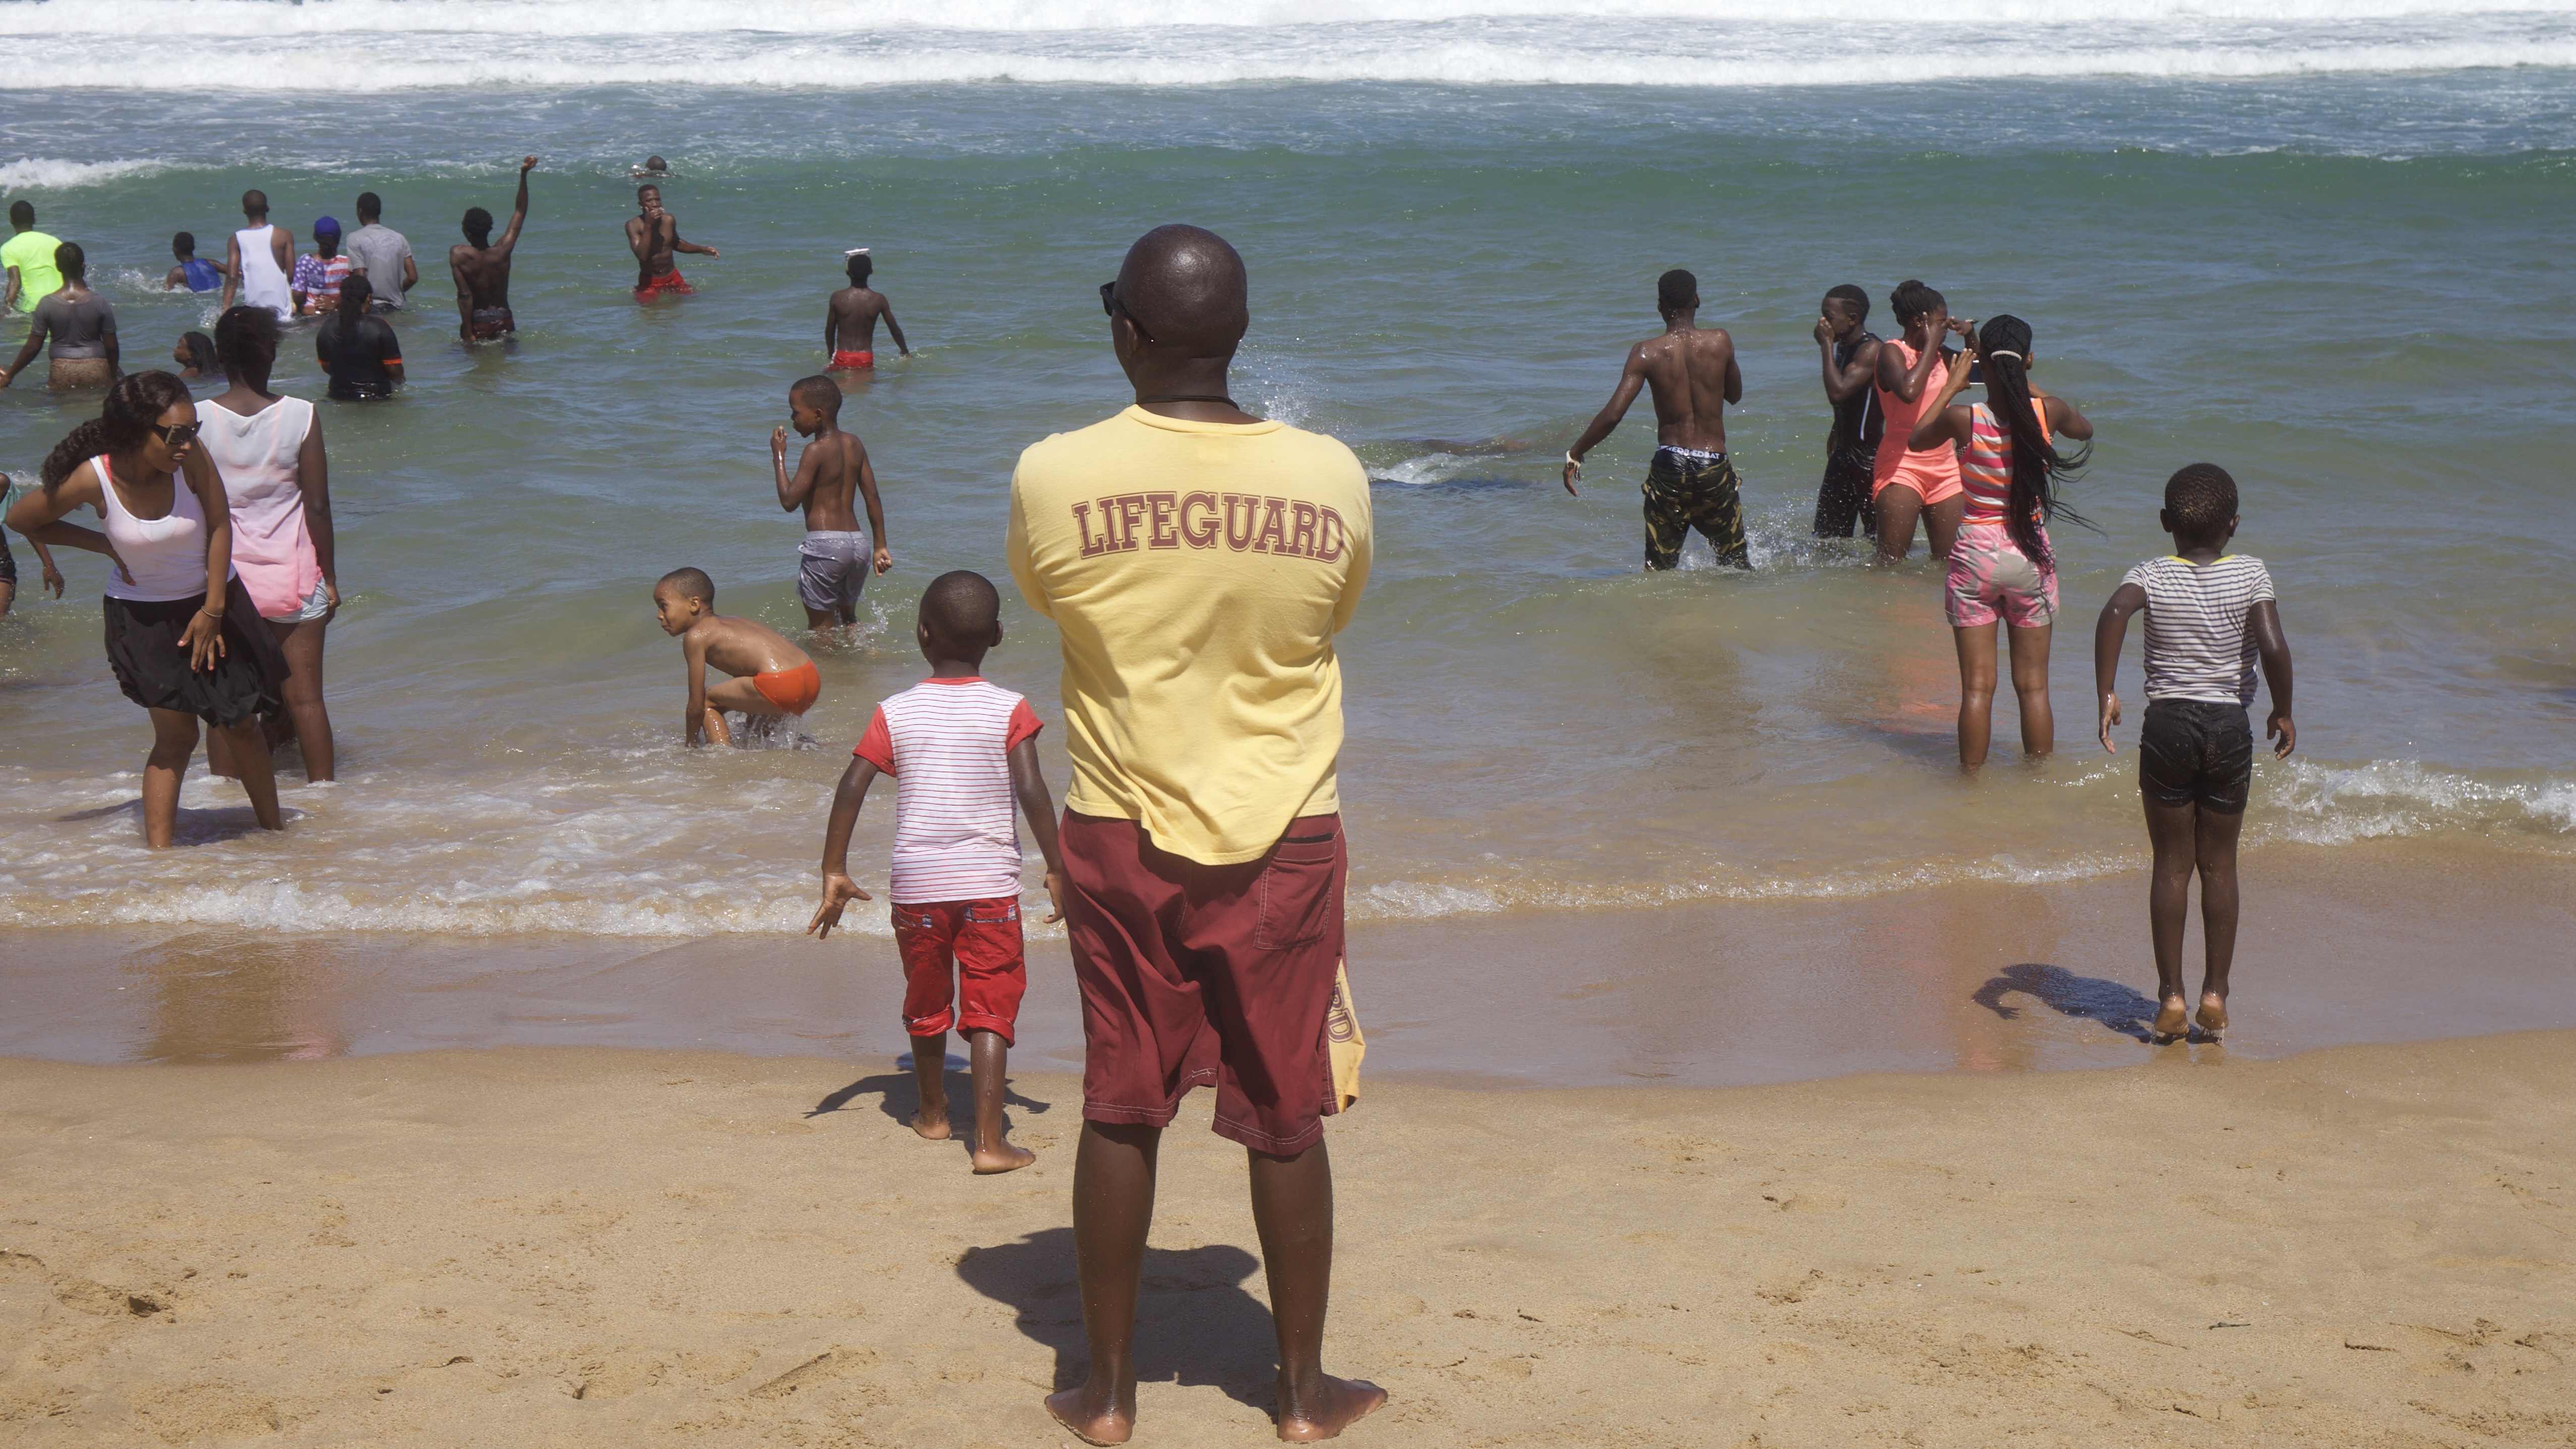 Racial tension still flares on South Africa's beaches, with black people flocking to the county's beaches.